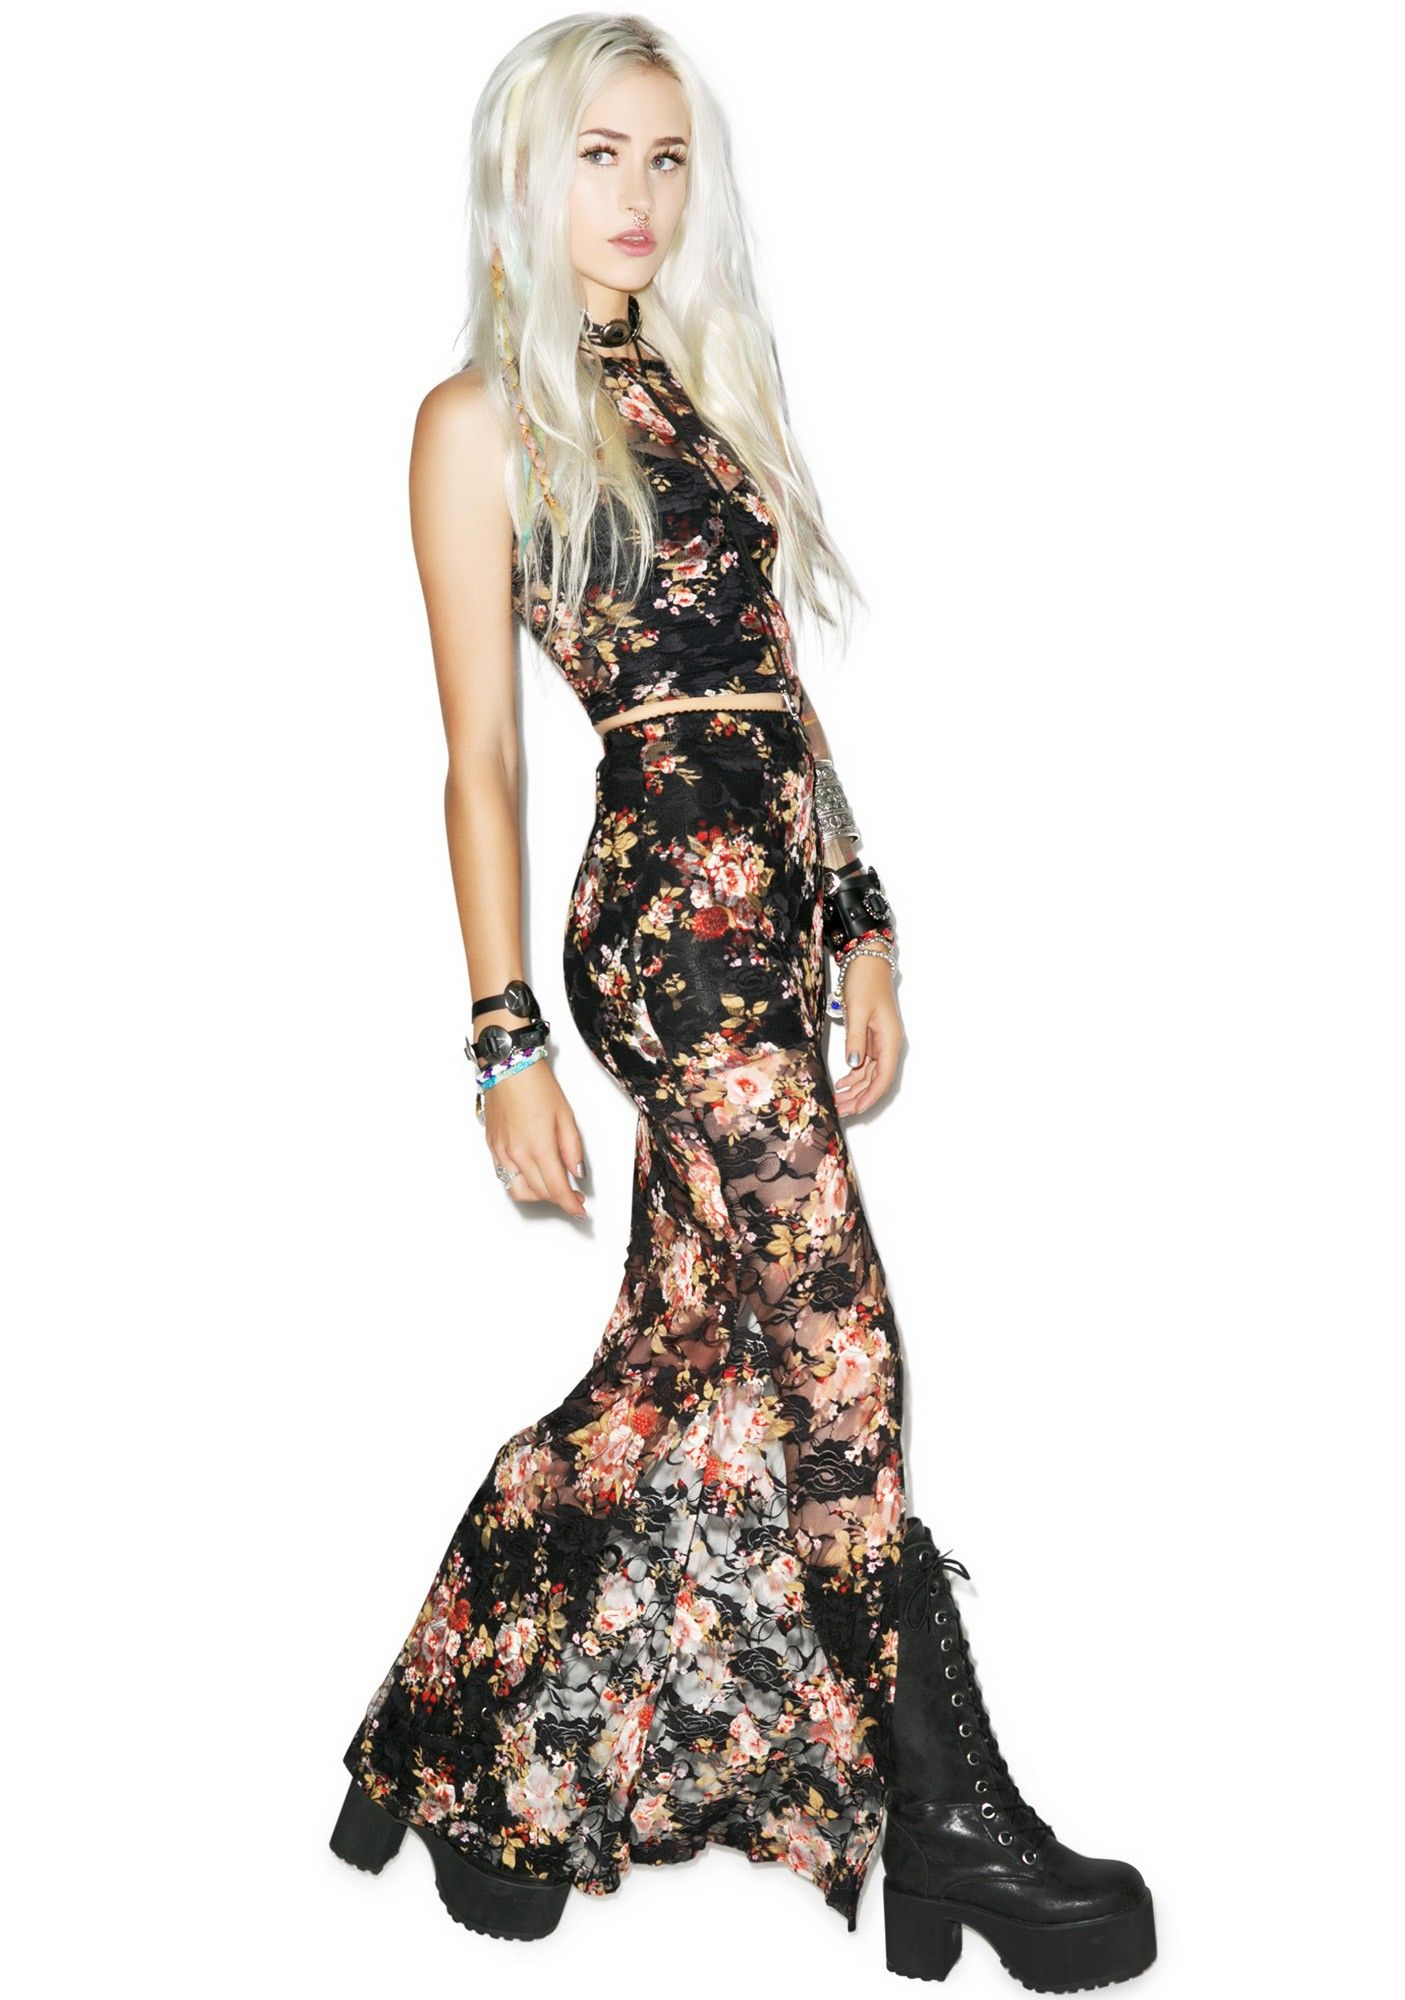 Peter paul and bloody maryus maxi skirt lip service emo goth and